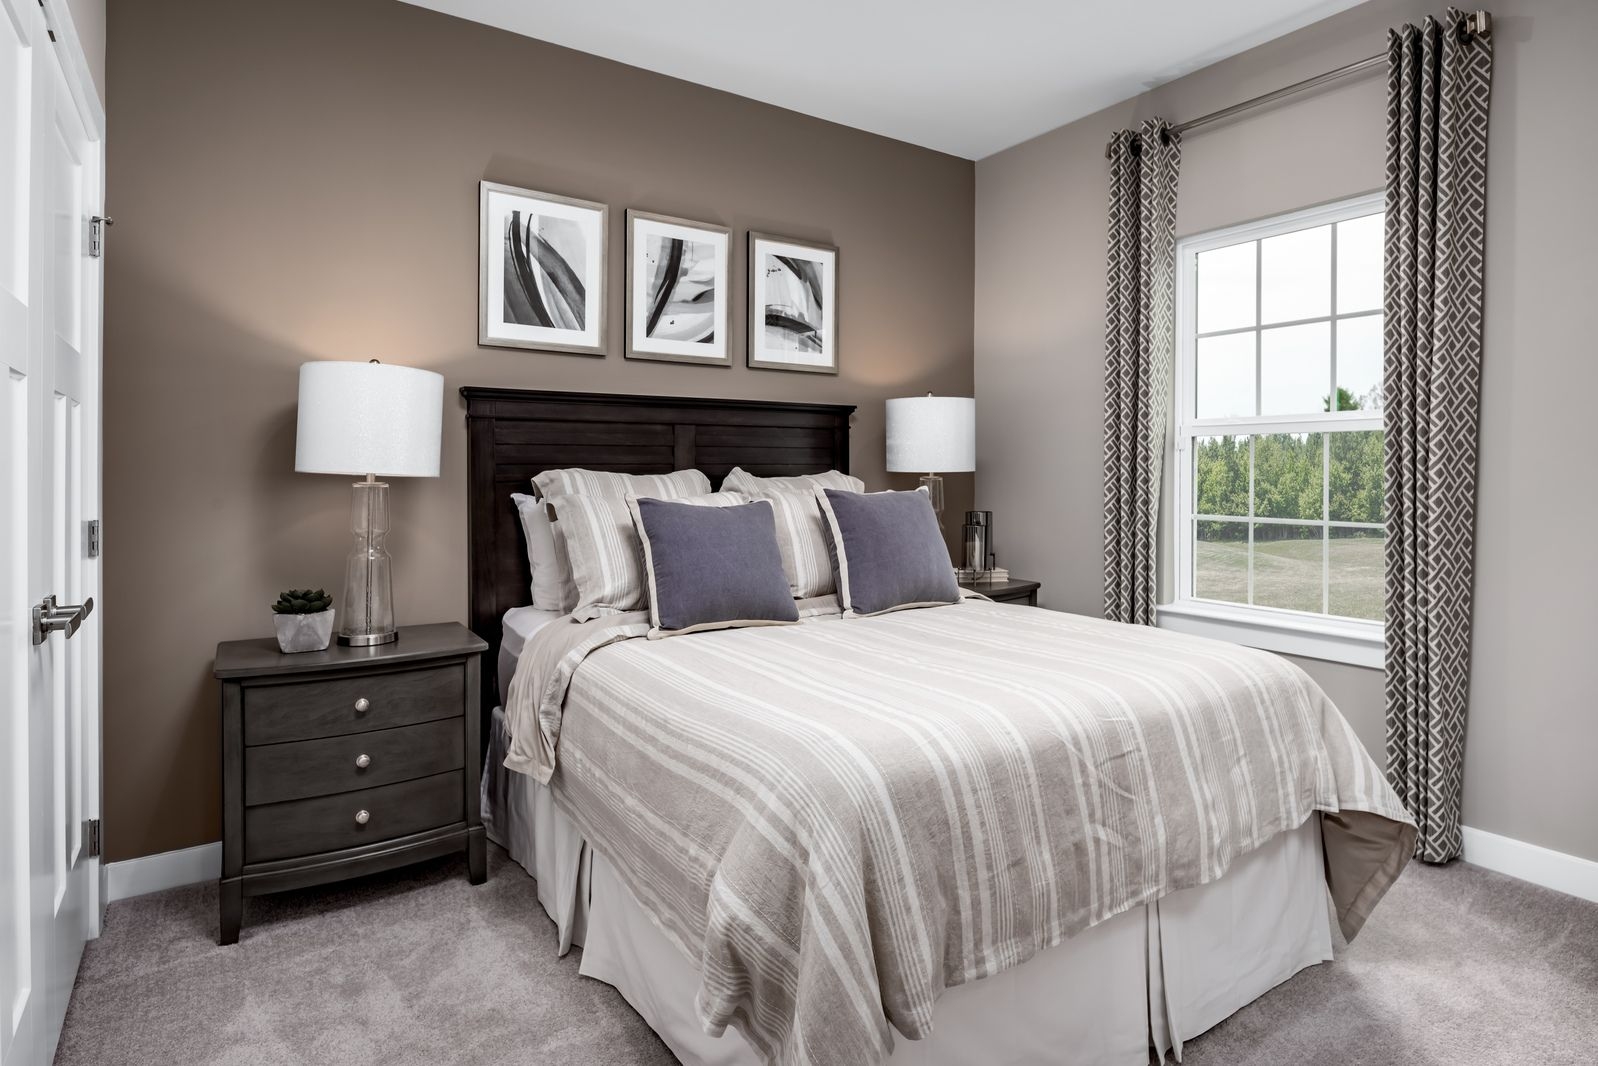 Bedroom featured in the Alberti Ranch By Ryan Homes in Cleveland, OH